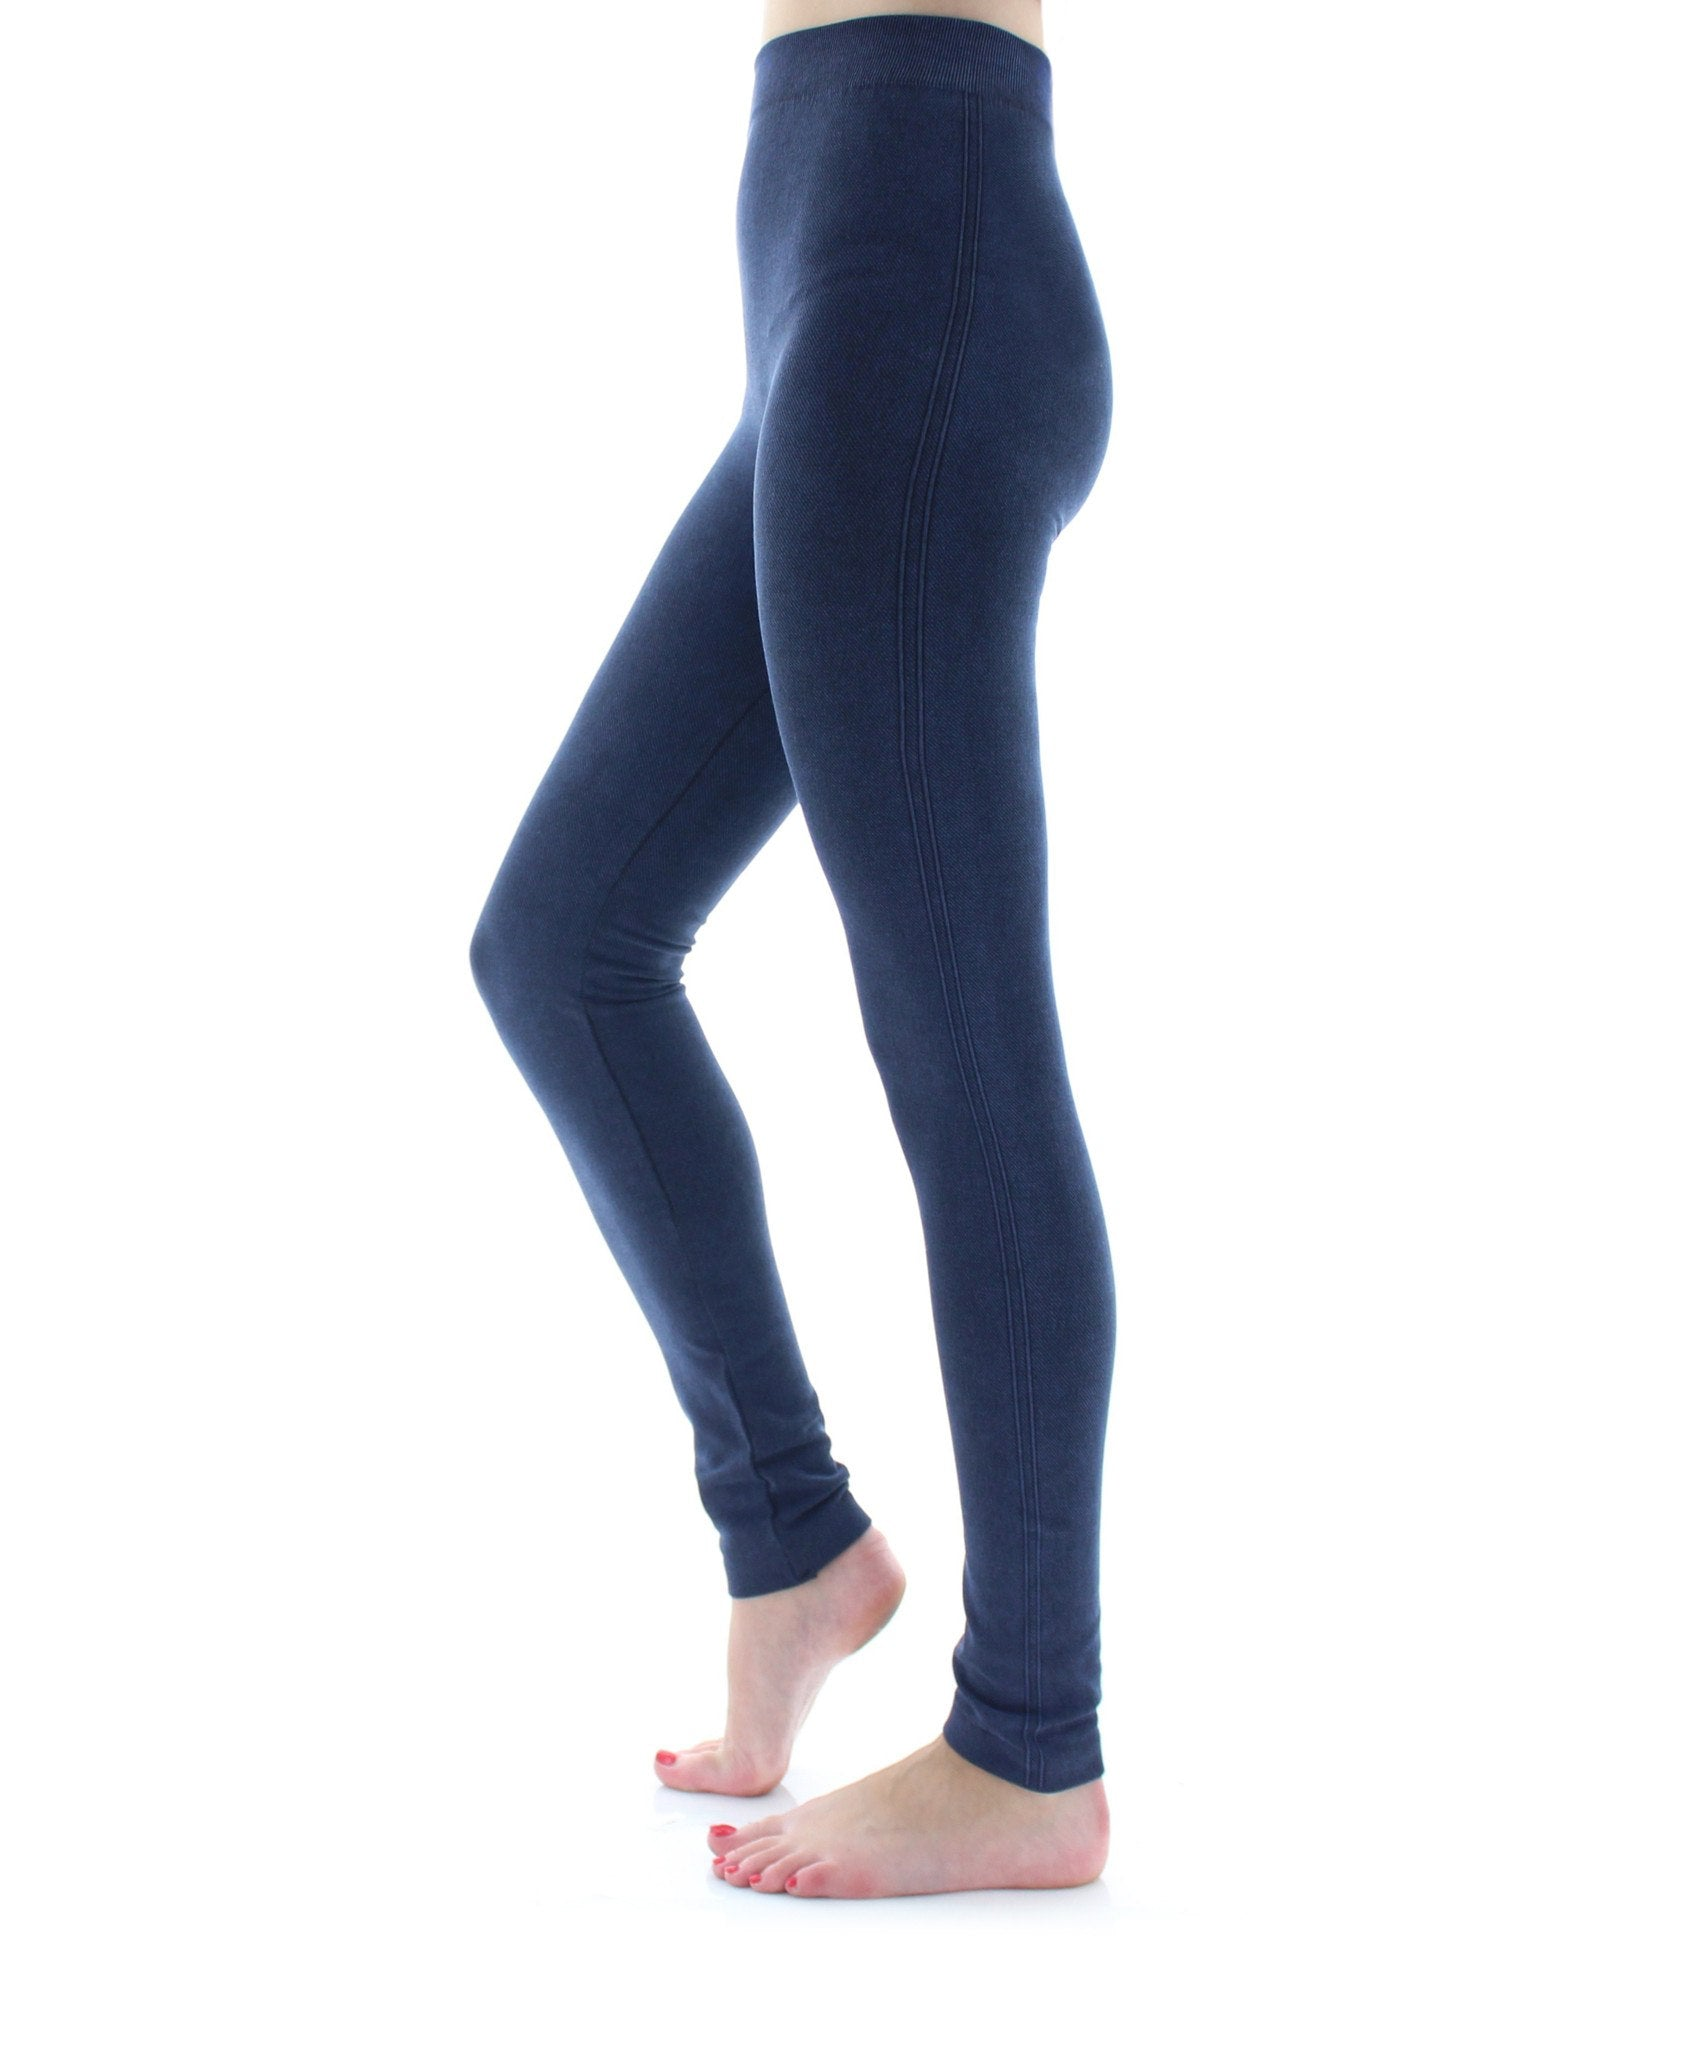 Sandblast Seamless Leggings - MeMoi - 2